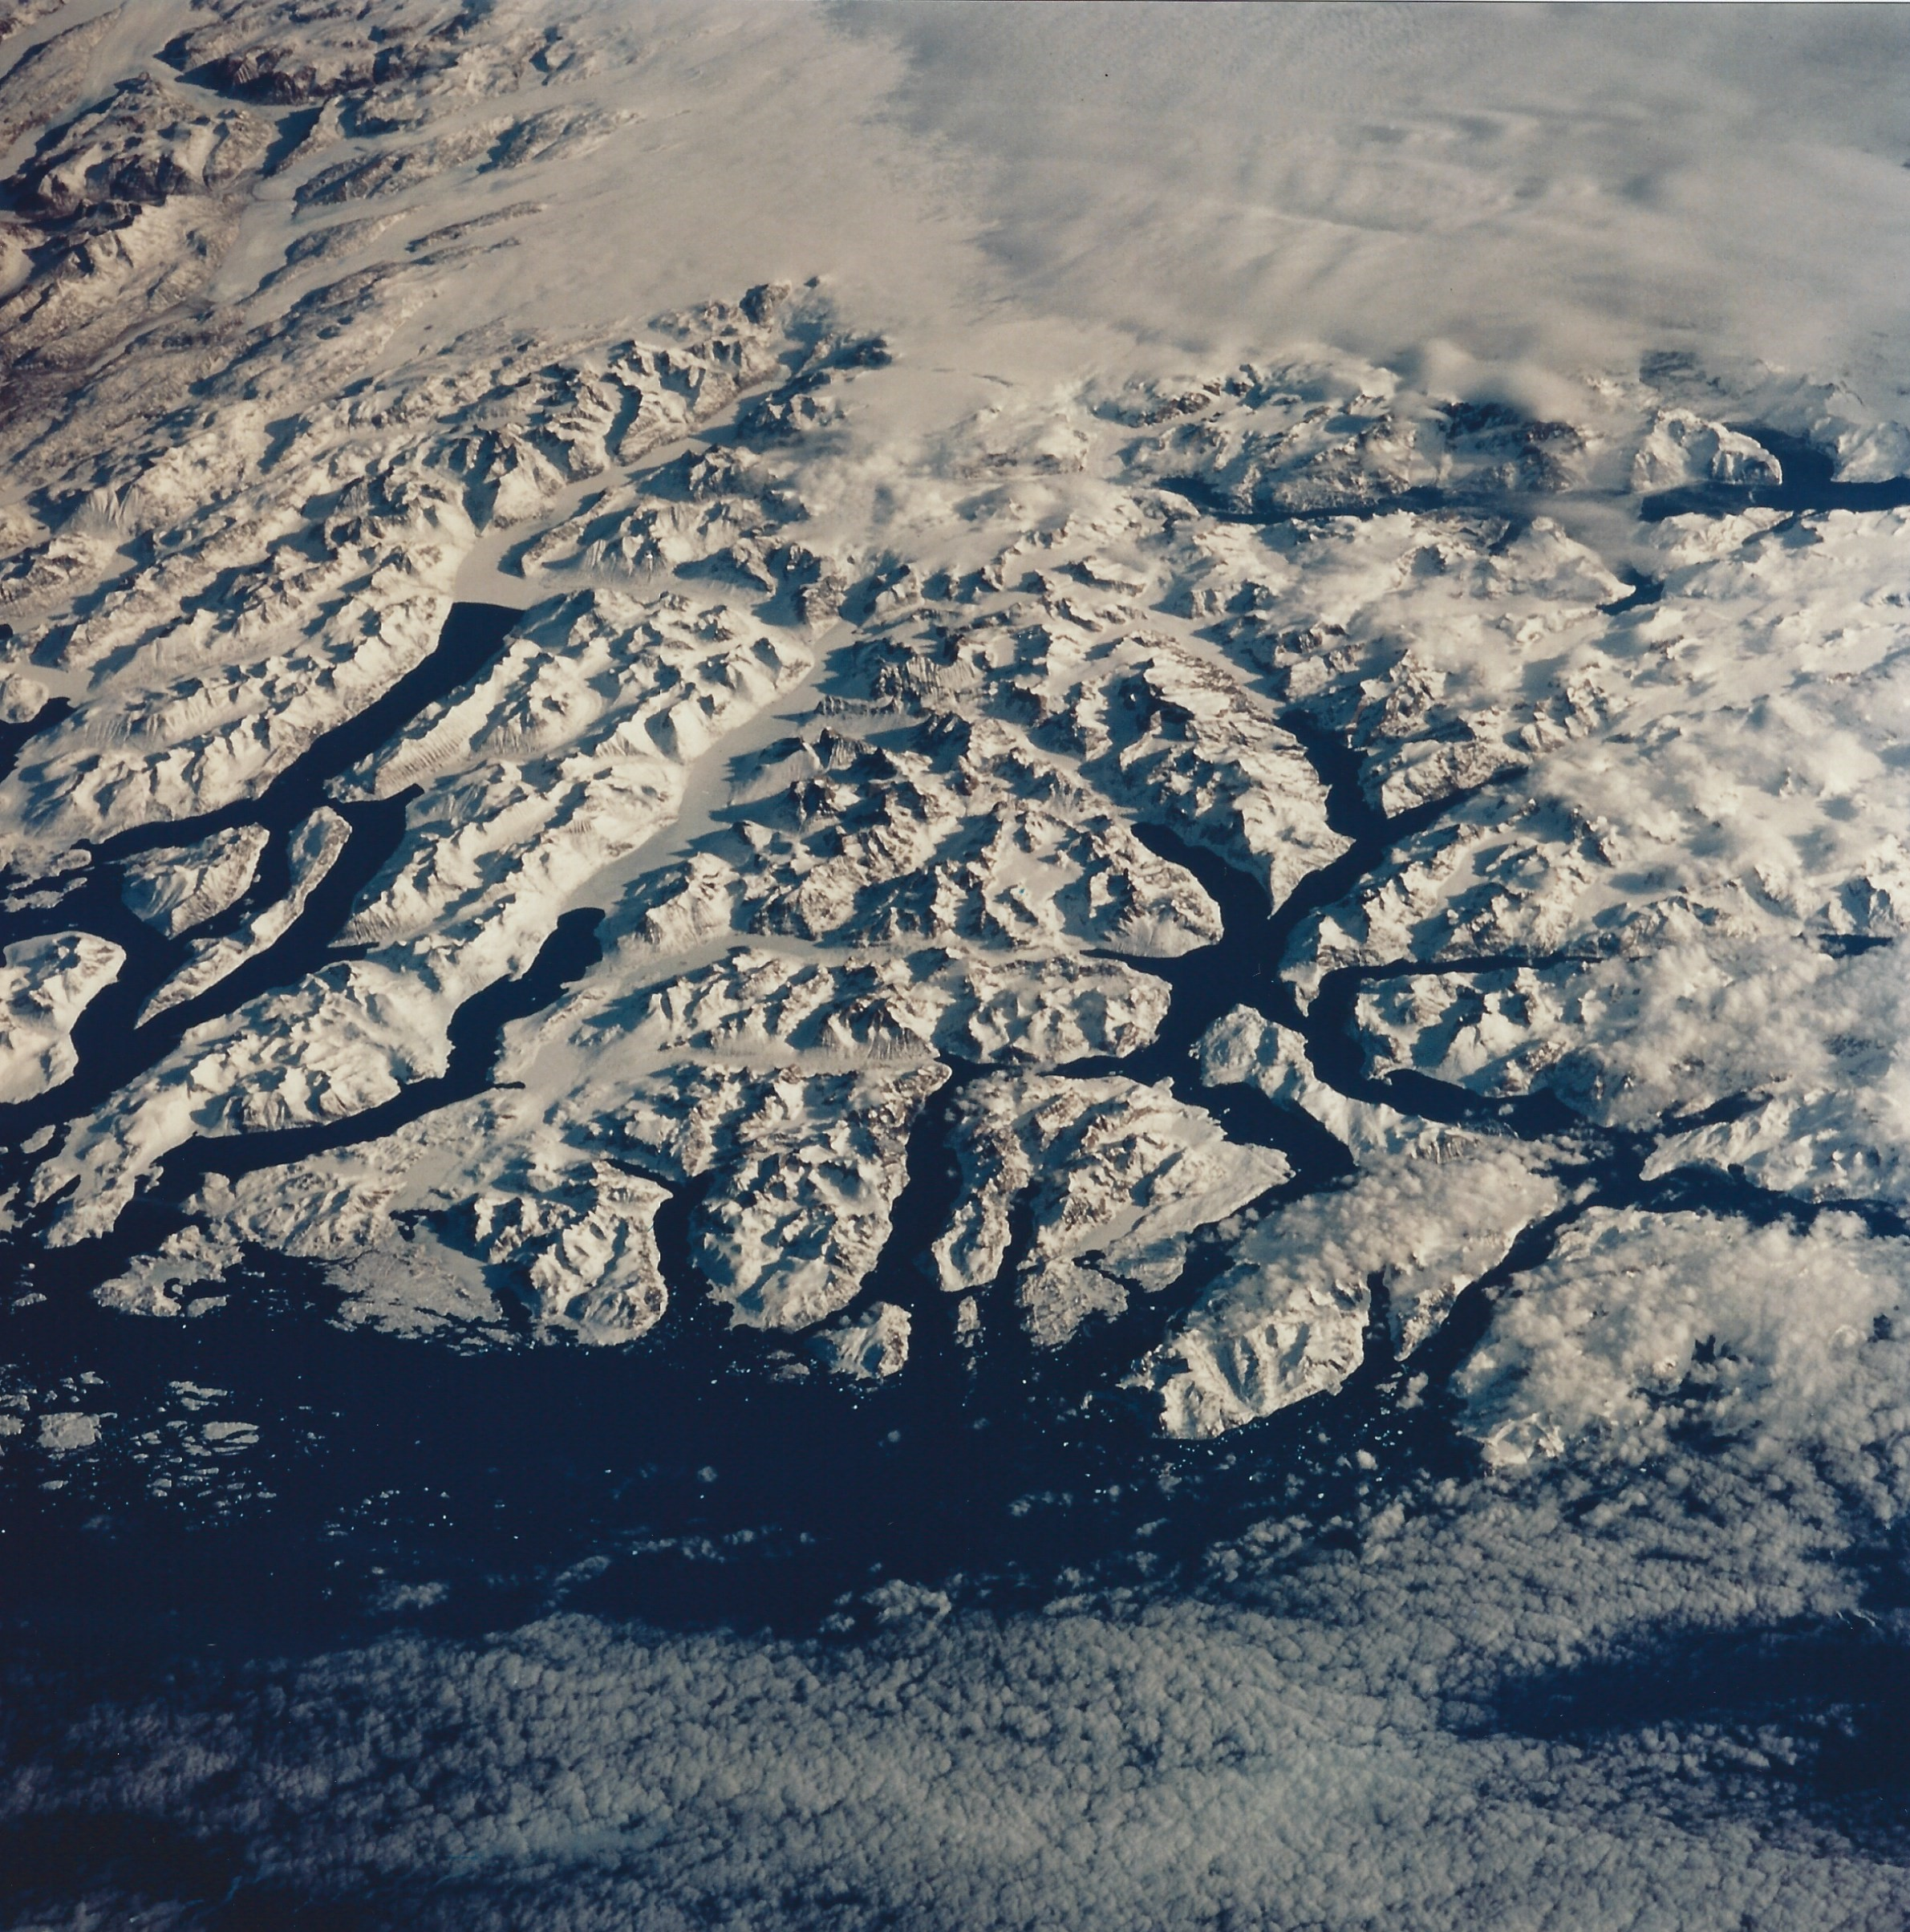 The Endeavour STS-59 crew took this photo of Cape Farewell, lower right, the southern tip of Greenland. April 16, 1994. (NASA STS059-224-021)